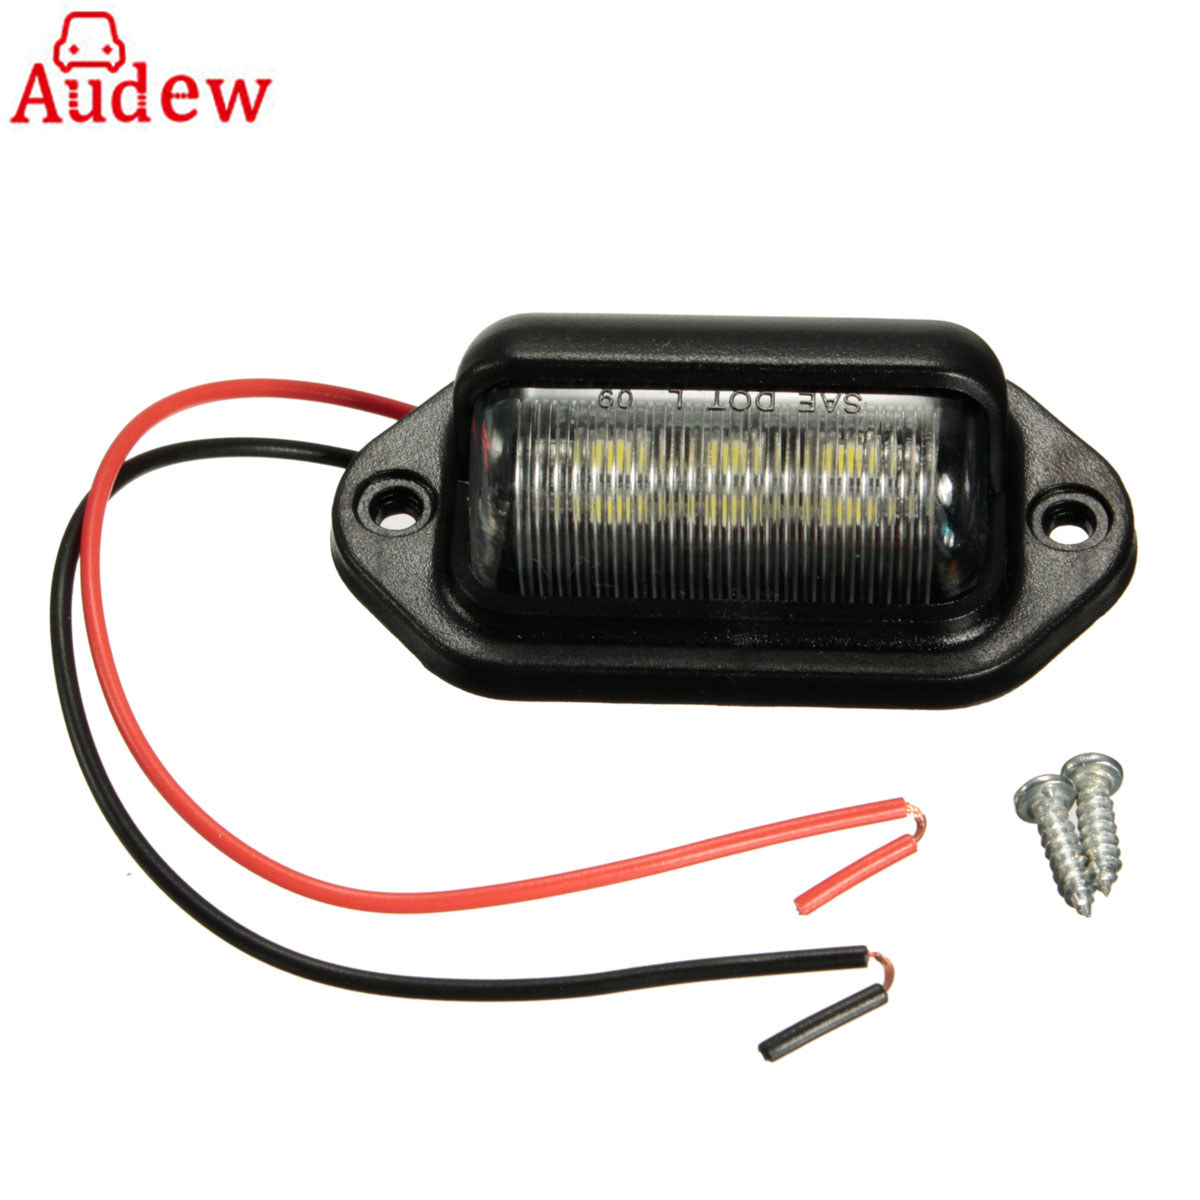 12V 6LEDs Car  License Plate Light Lamp Bulbs for Boats Motorcycle Automotive Aircraft RV Truck Trailer  White 6 leds fence lamp